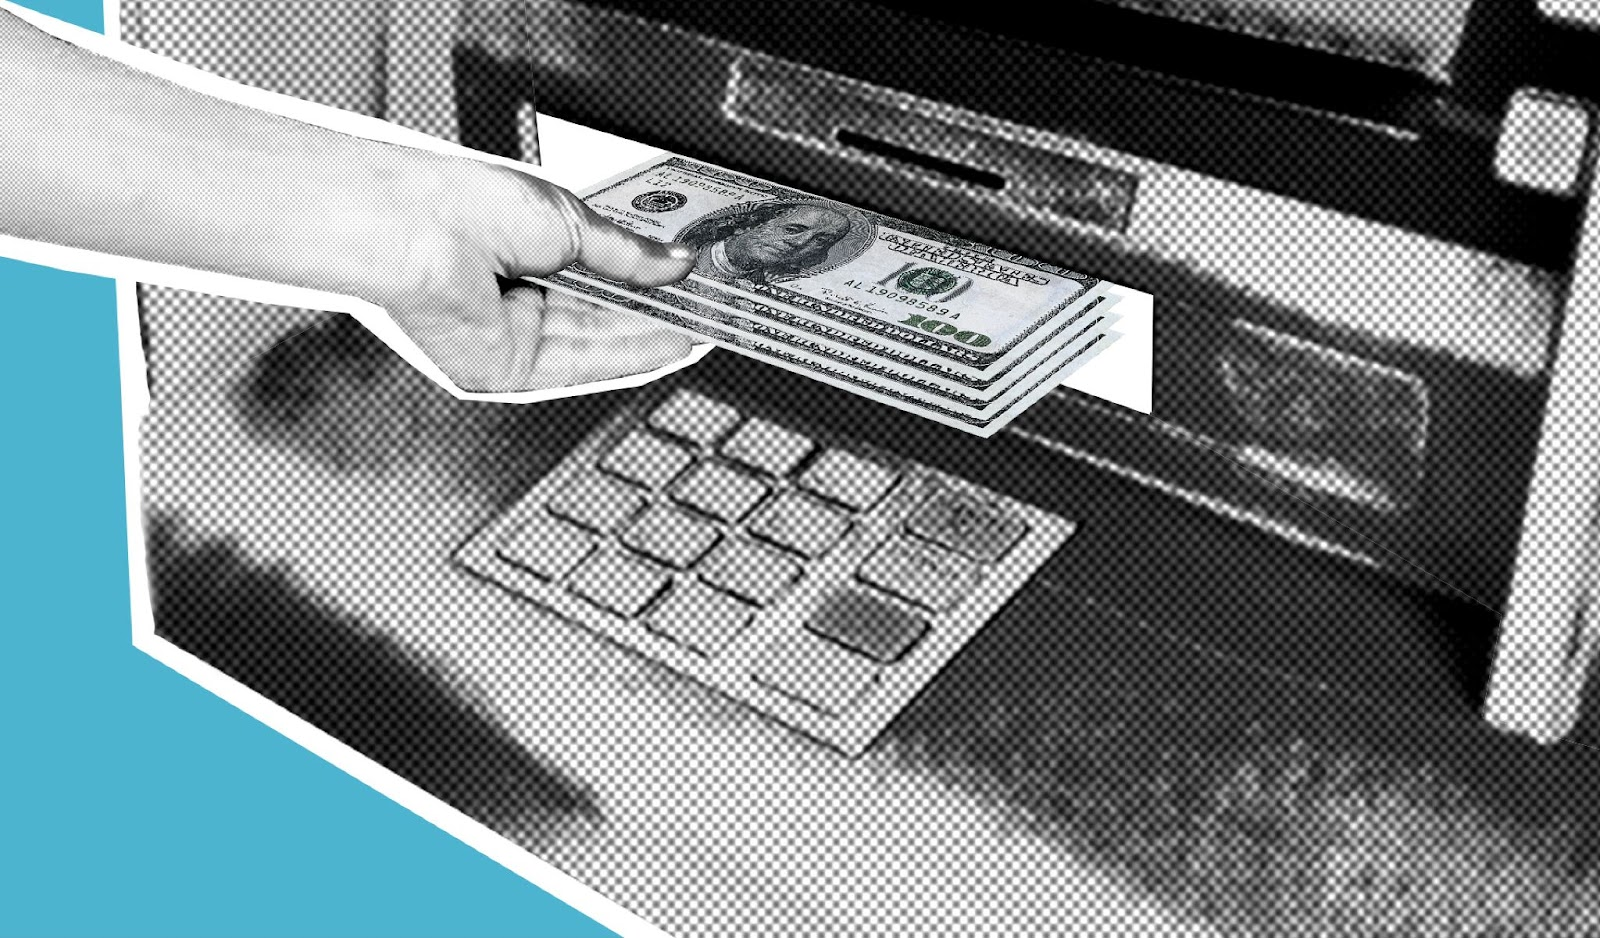 How to withdraw money from Varo without a debit card